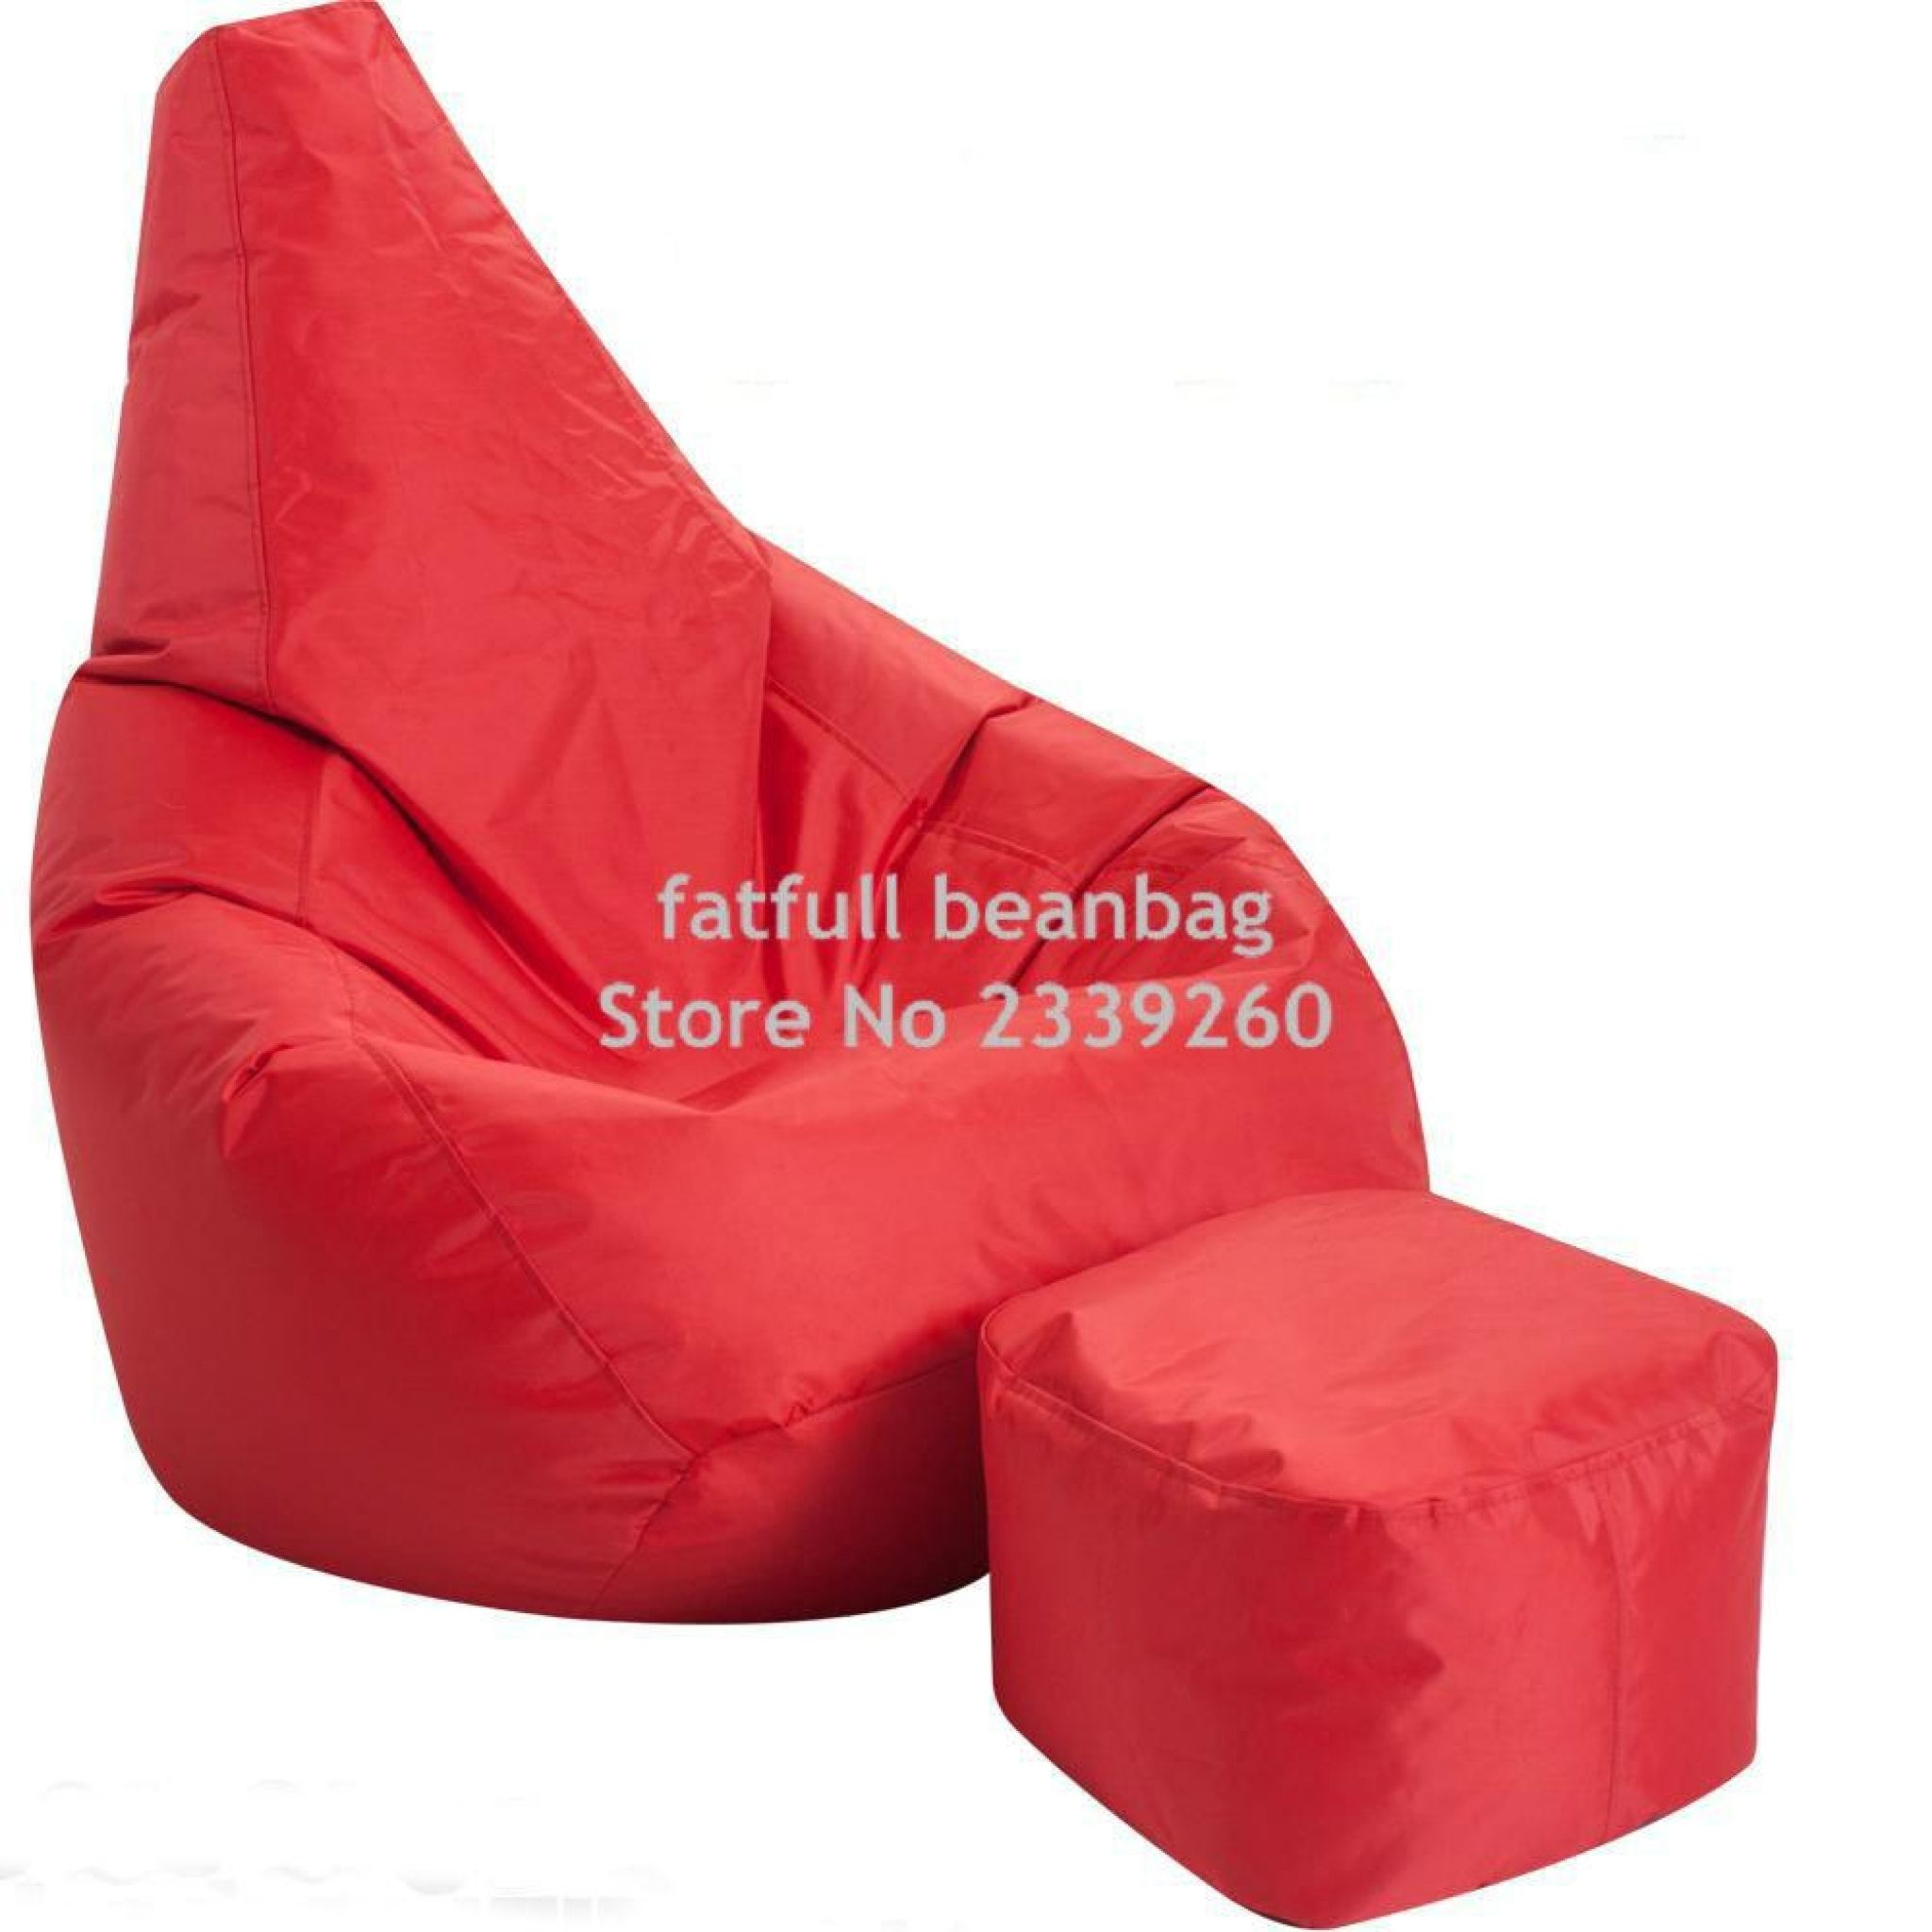 Outdoor Waterproof Bean Bags Furniture   Interior Paint Colors For 2017  Check More At Http: Part 25